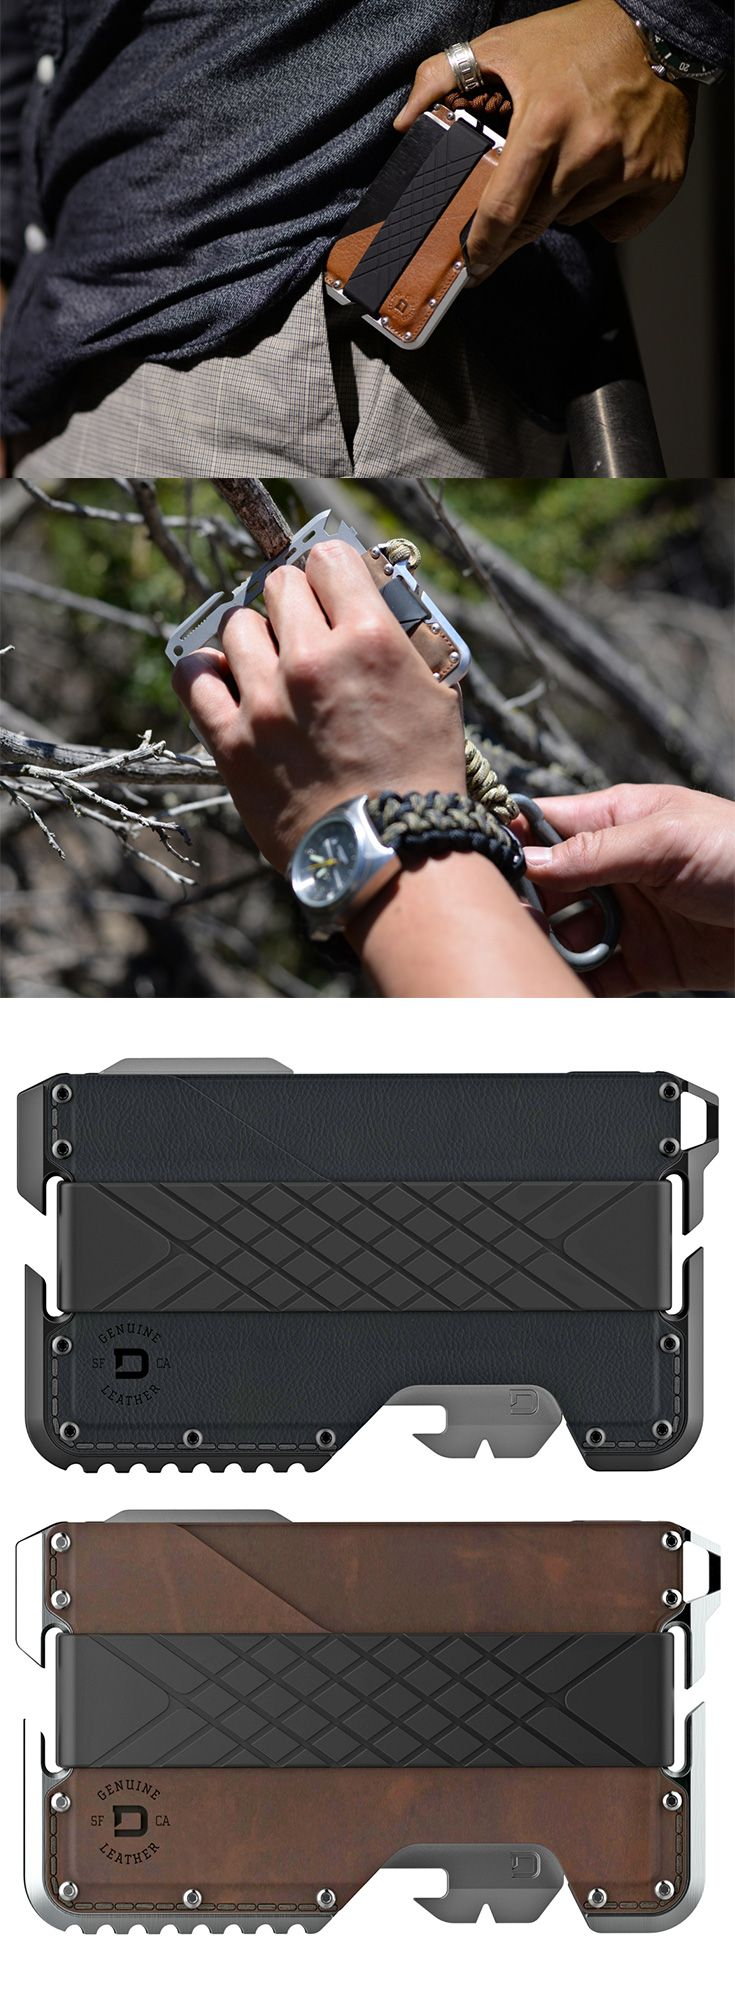 The 'Dango' is the wallet men deserve, it is trendy and tactical at the same time, its built of the finest leather and precisely molded from aluminum, keeping the construction sexy as well as sturdy.... READ MORE at Yanko Design !